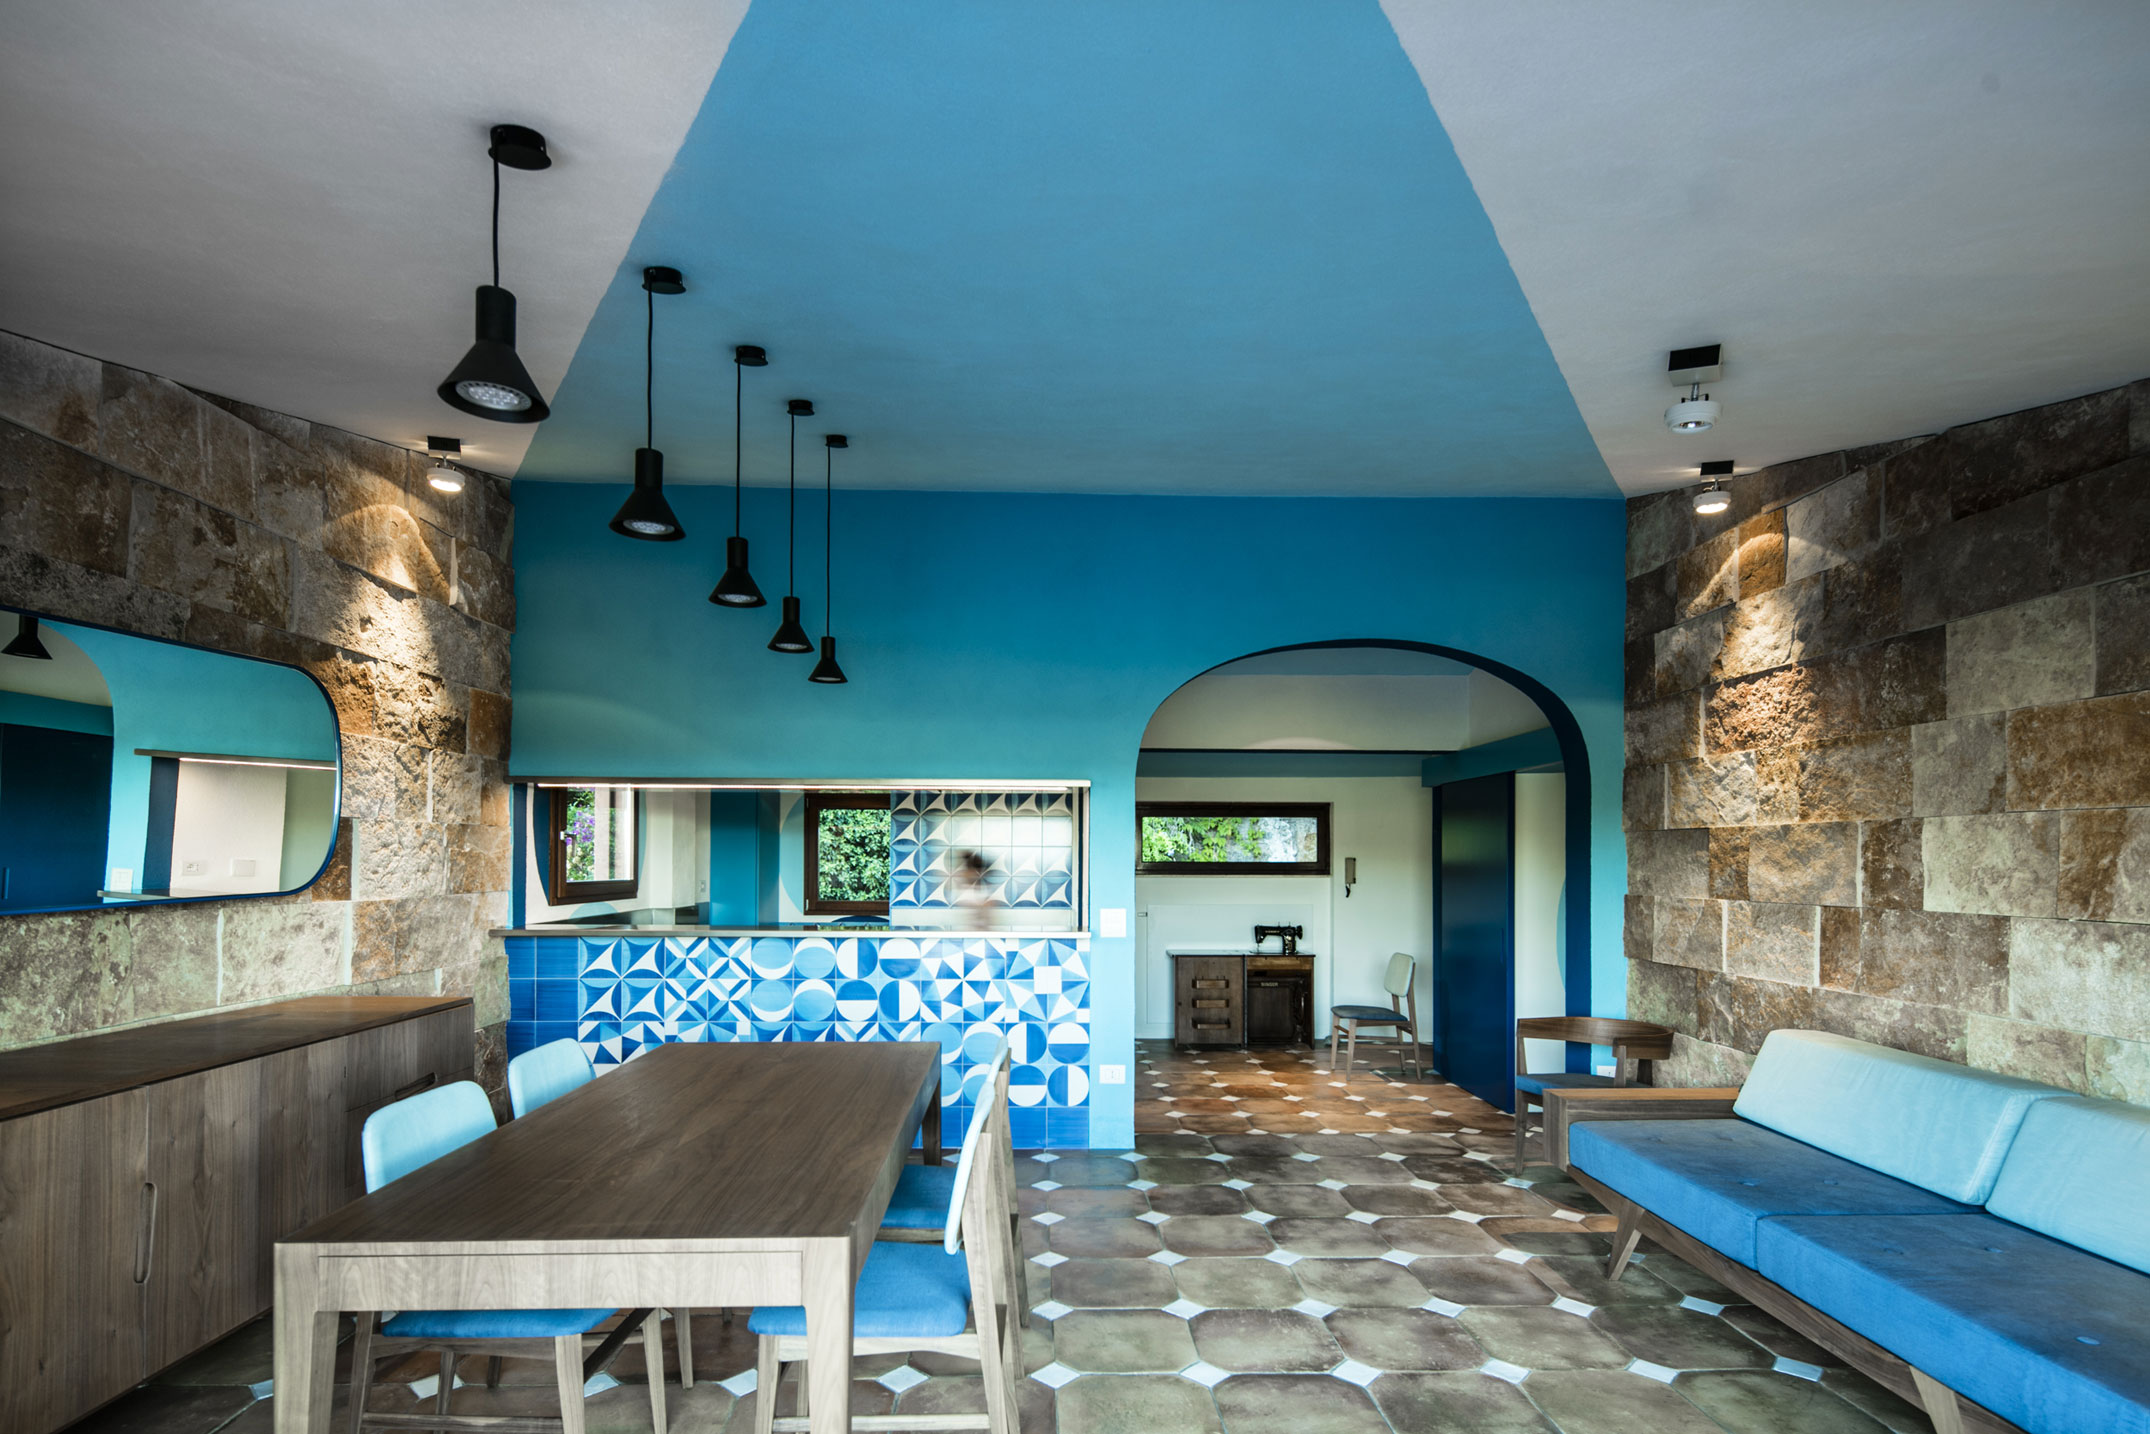 Filippo bombace architect creates an apartment in blue in porto santo stefano italy